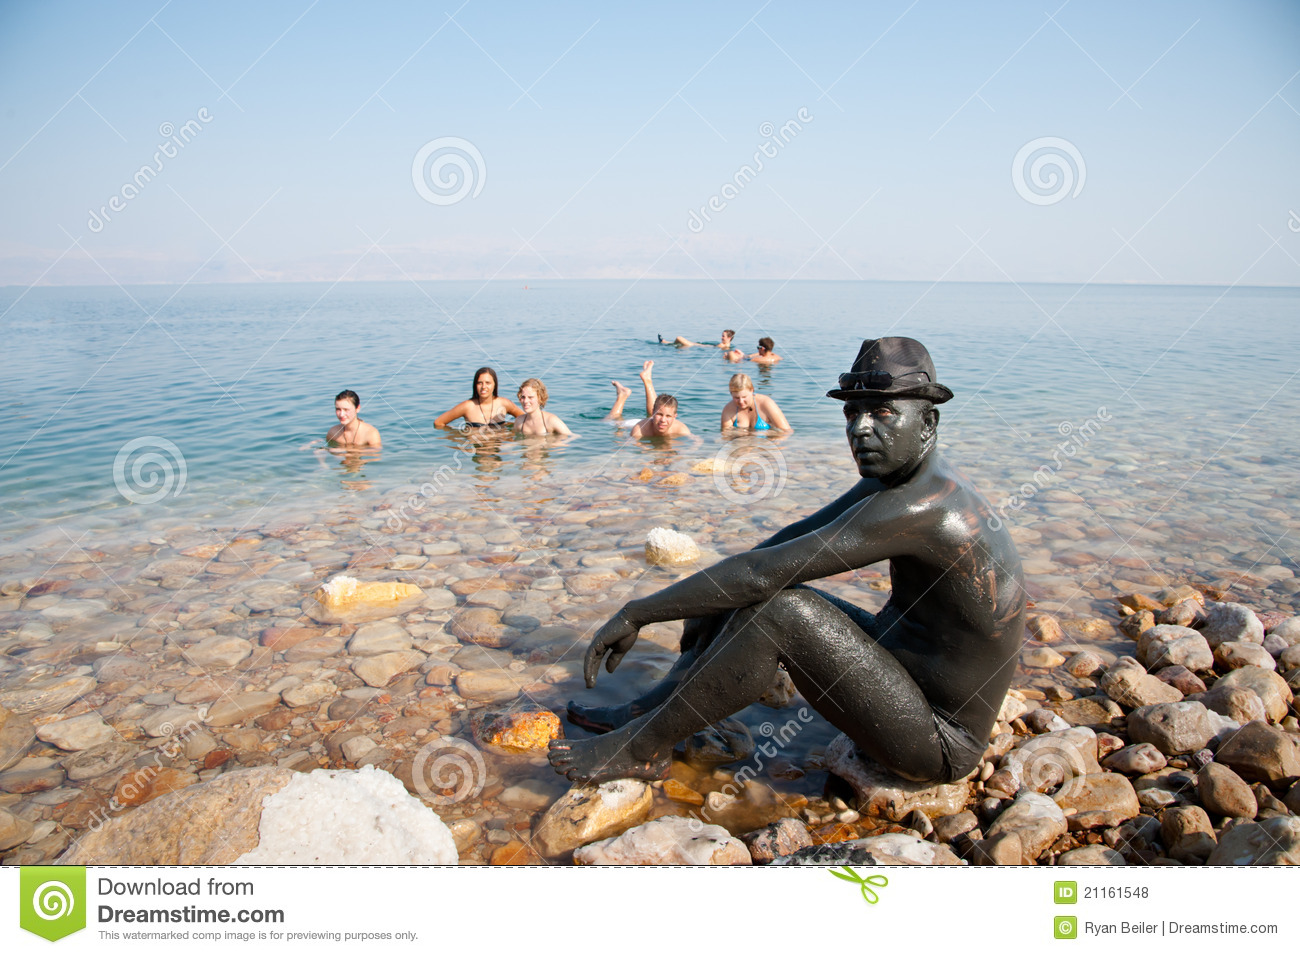 Clear, Blue Water, Dead Sea, Israel Royalty Free Stock Photography.